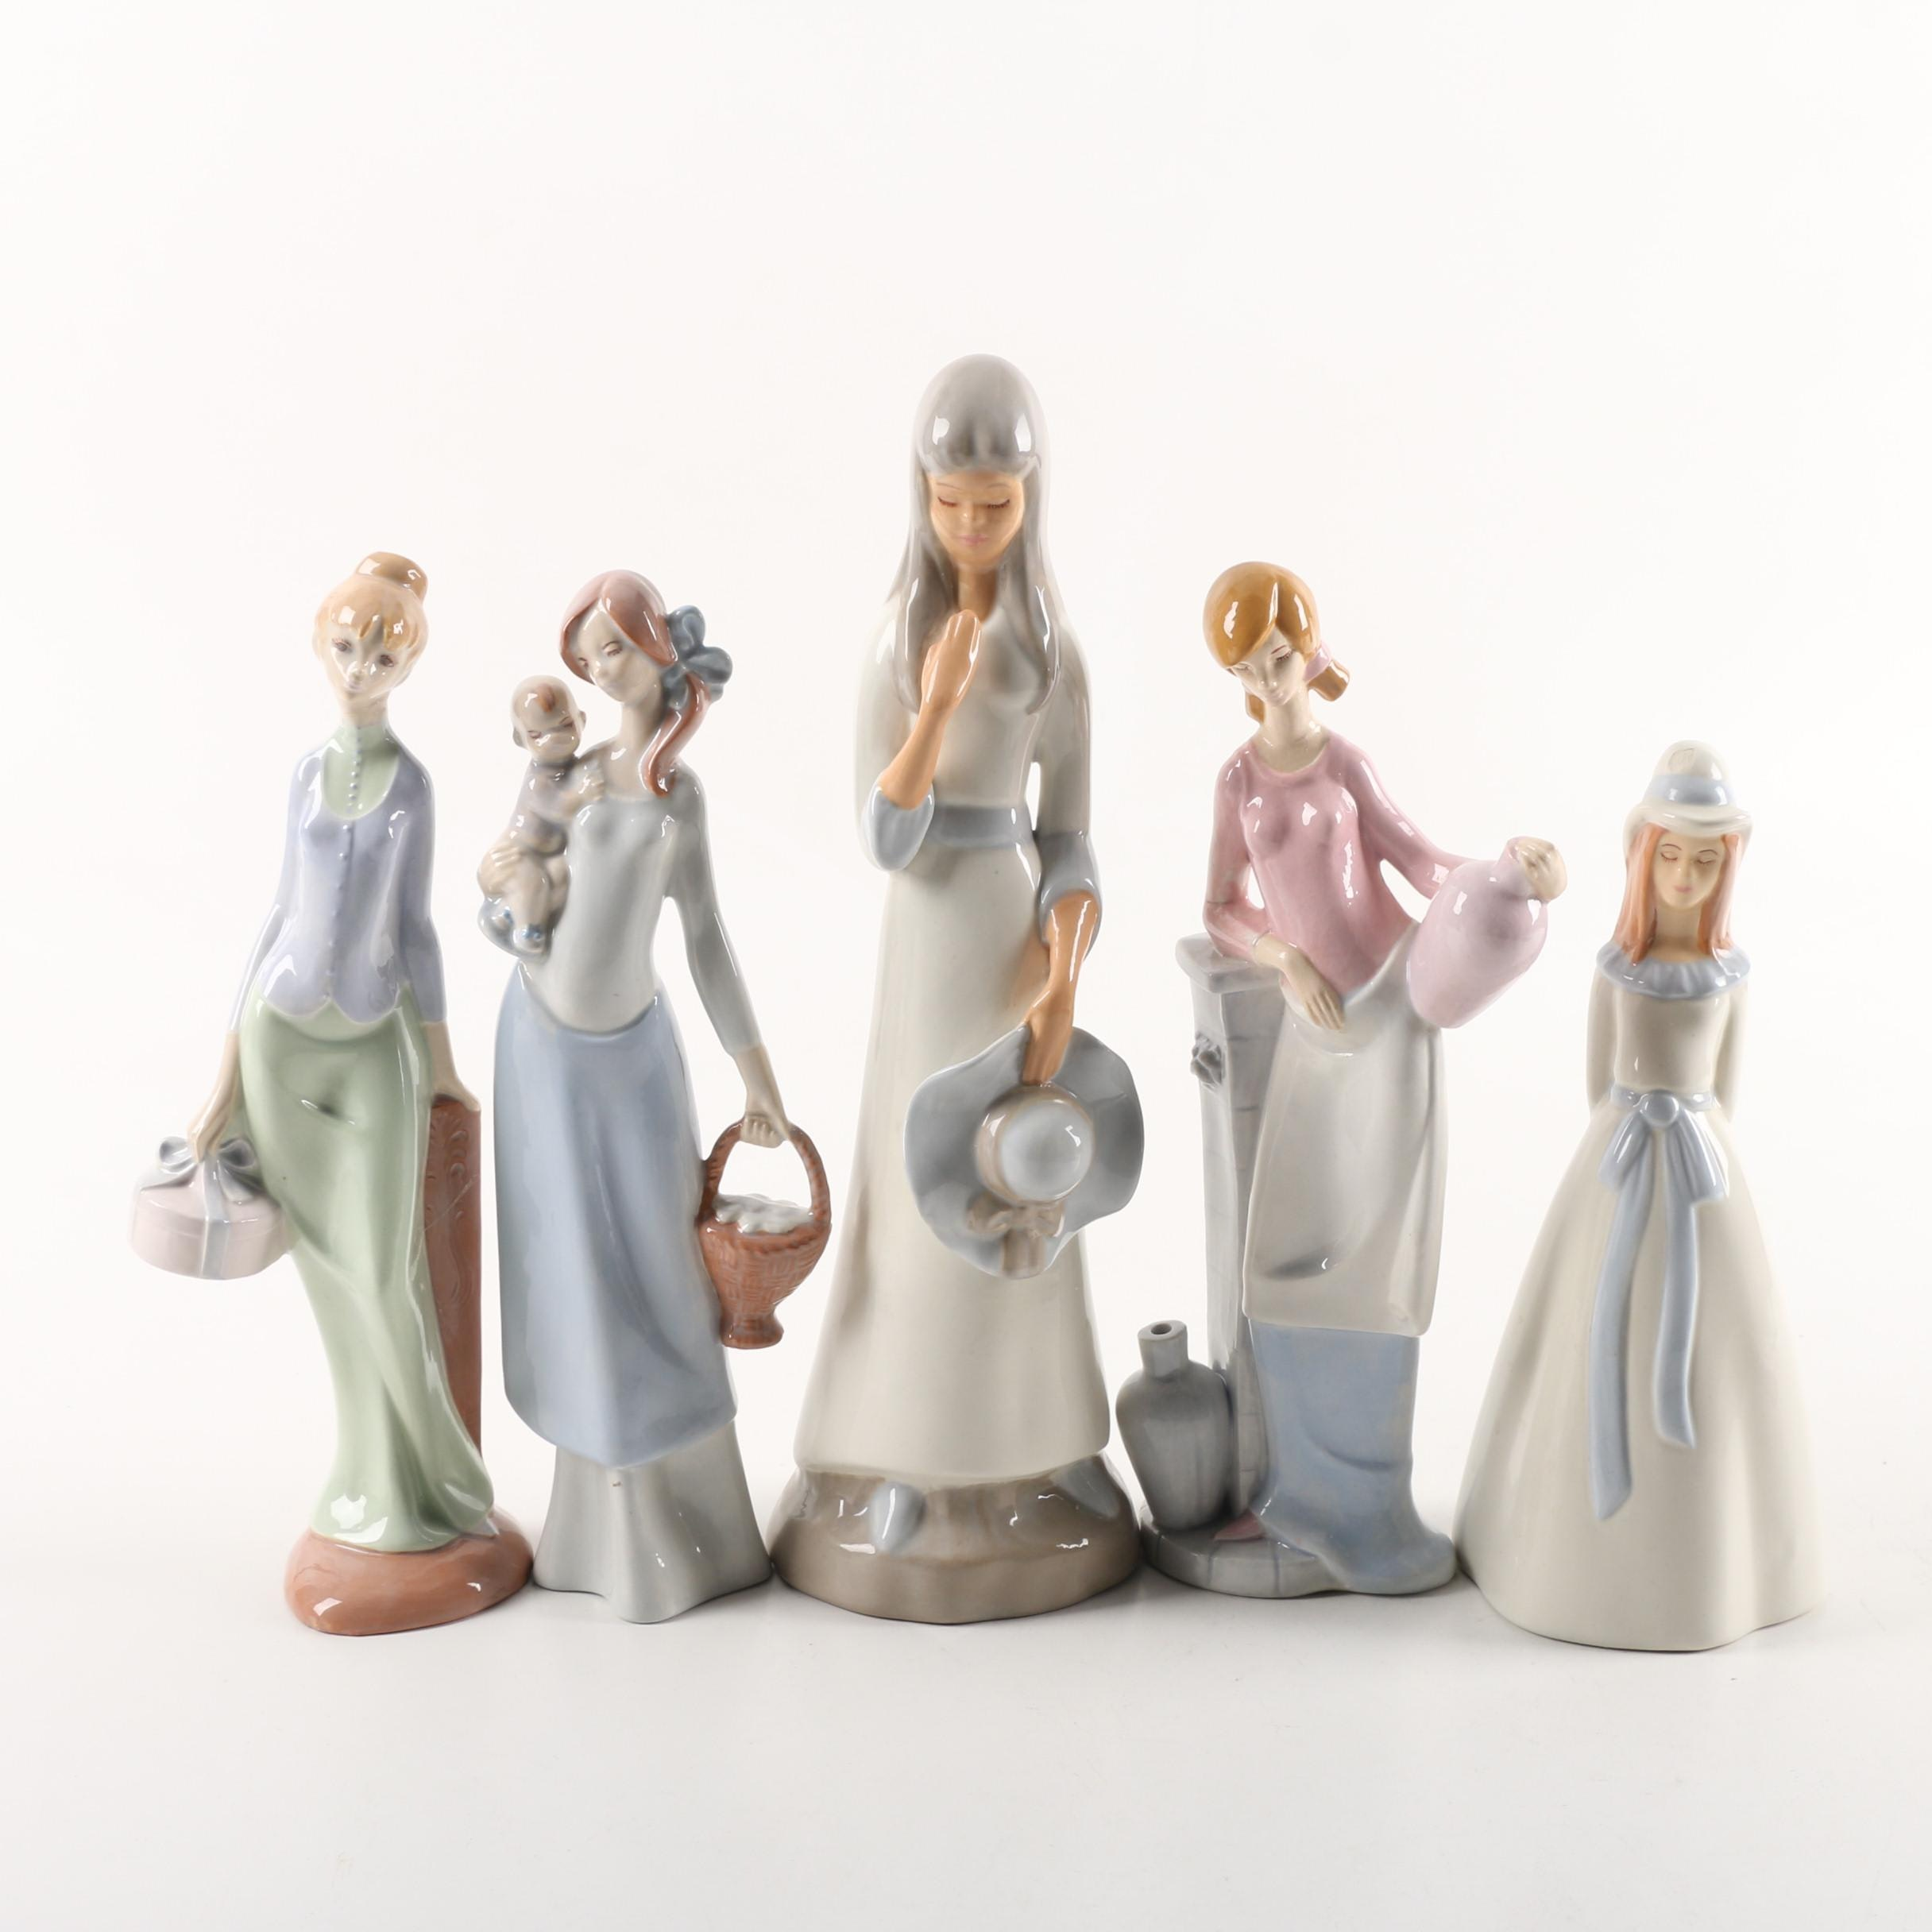 Ceramic Figurines Depicting Young Women